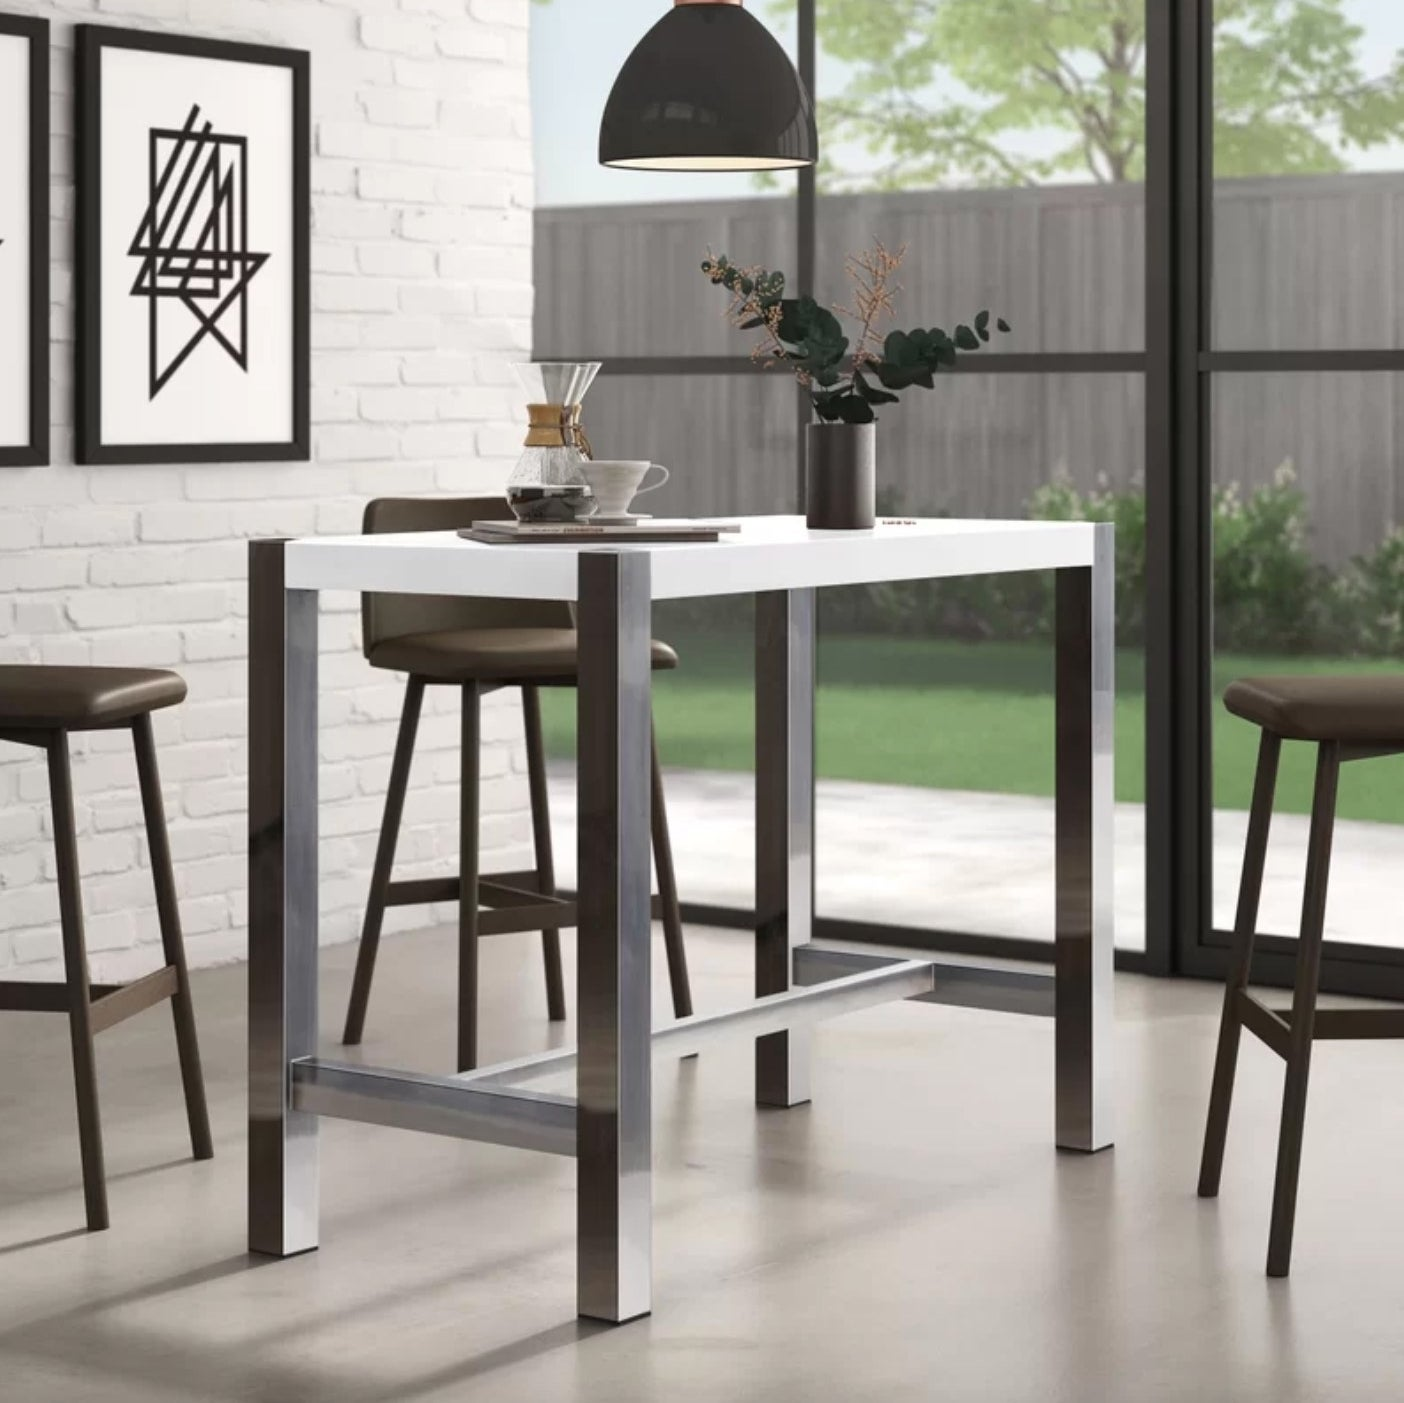 The high top dining table in white